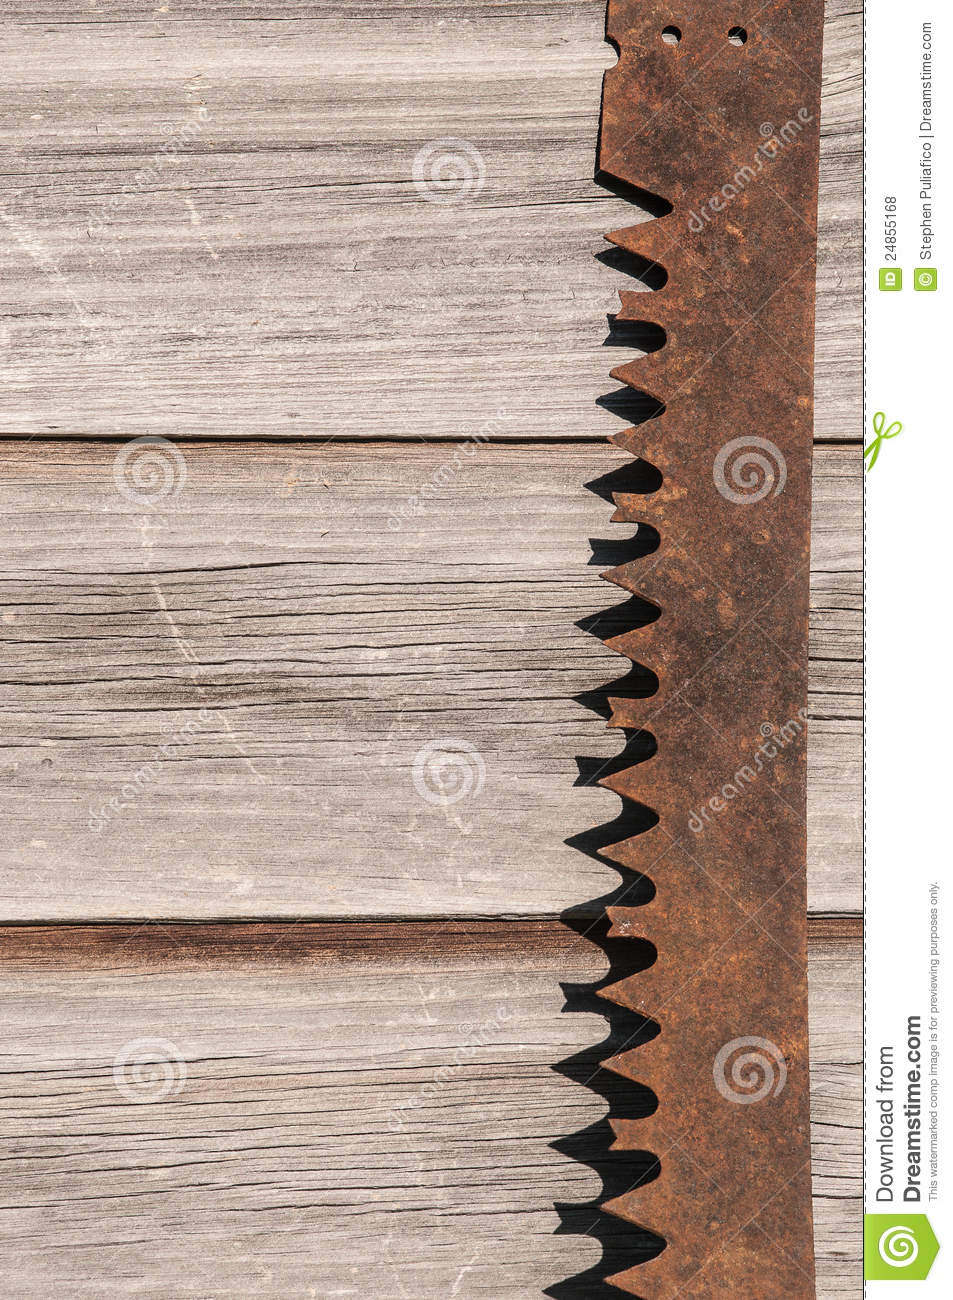 Old Saw Blade Royalty Free Stock Photos Image 24855168